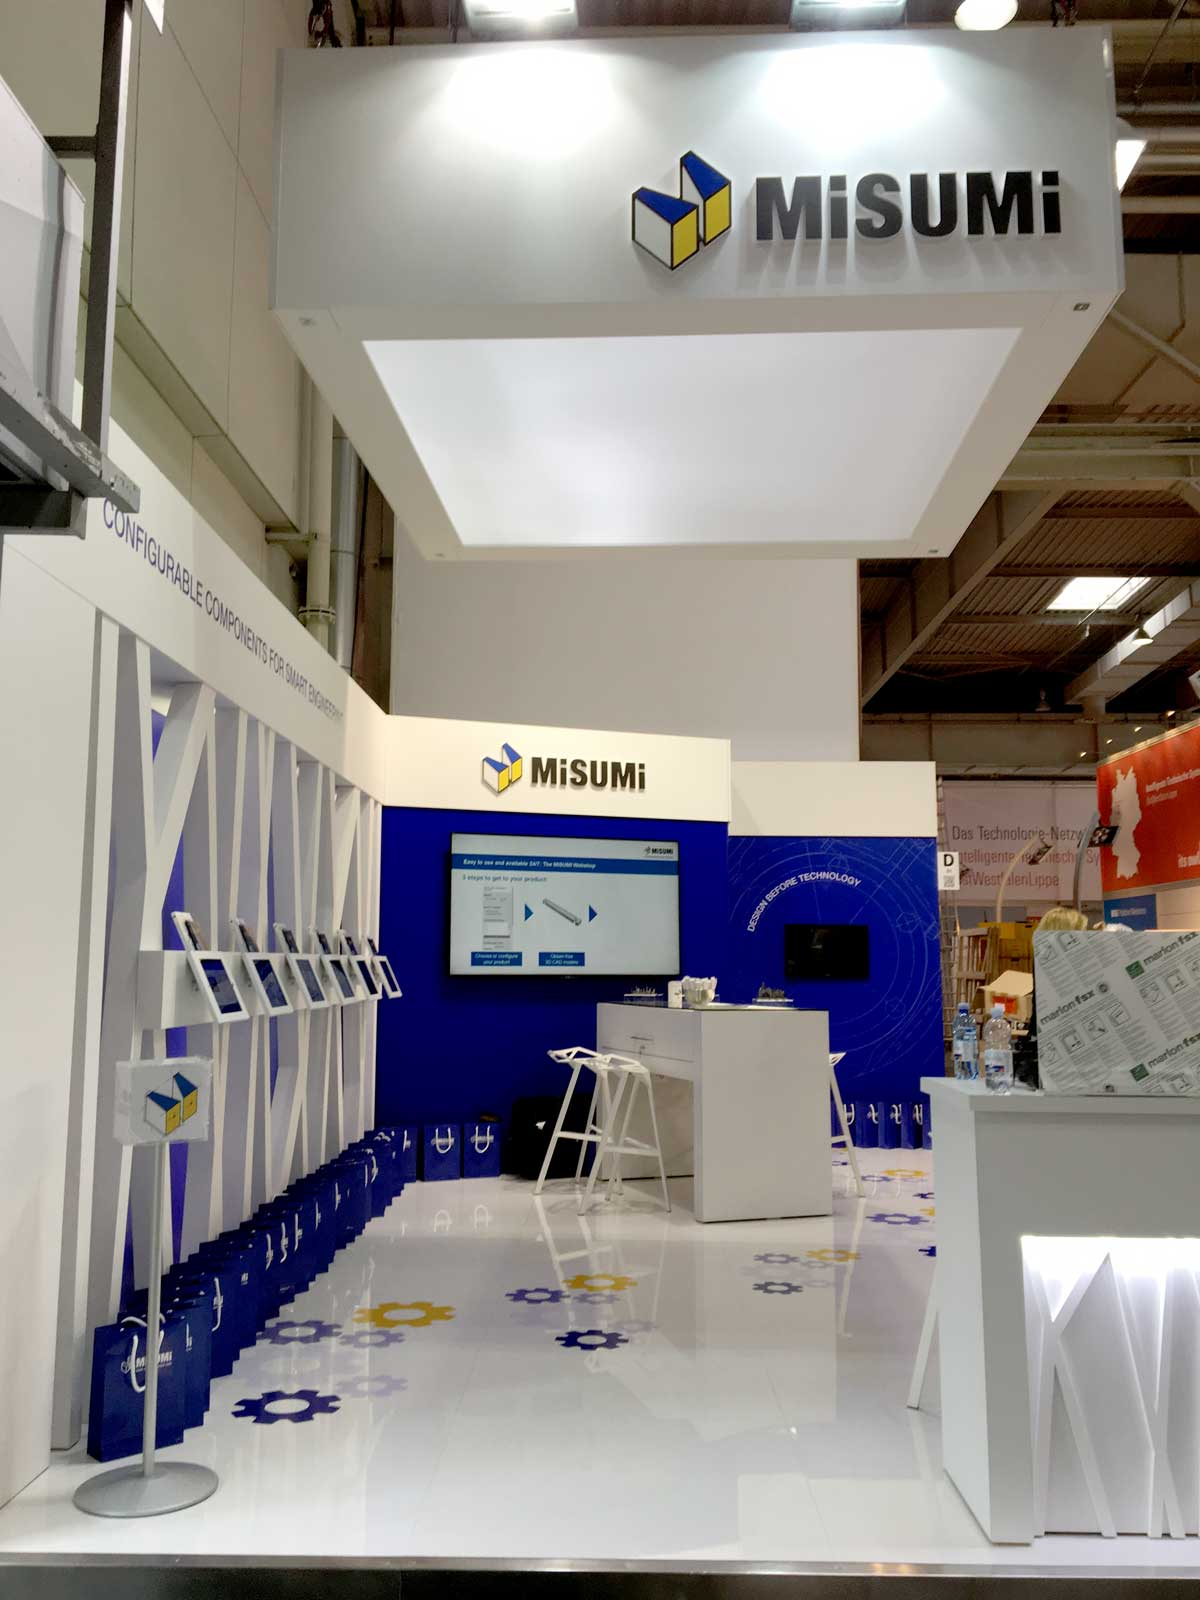 Misumi Hannover Messe 2017 Hannover Fiere